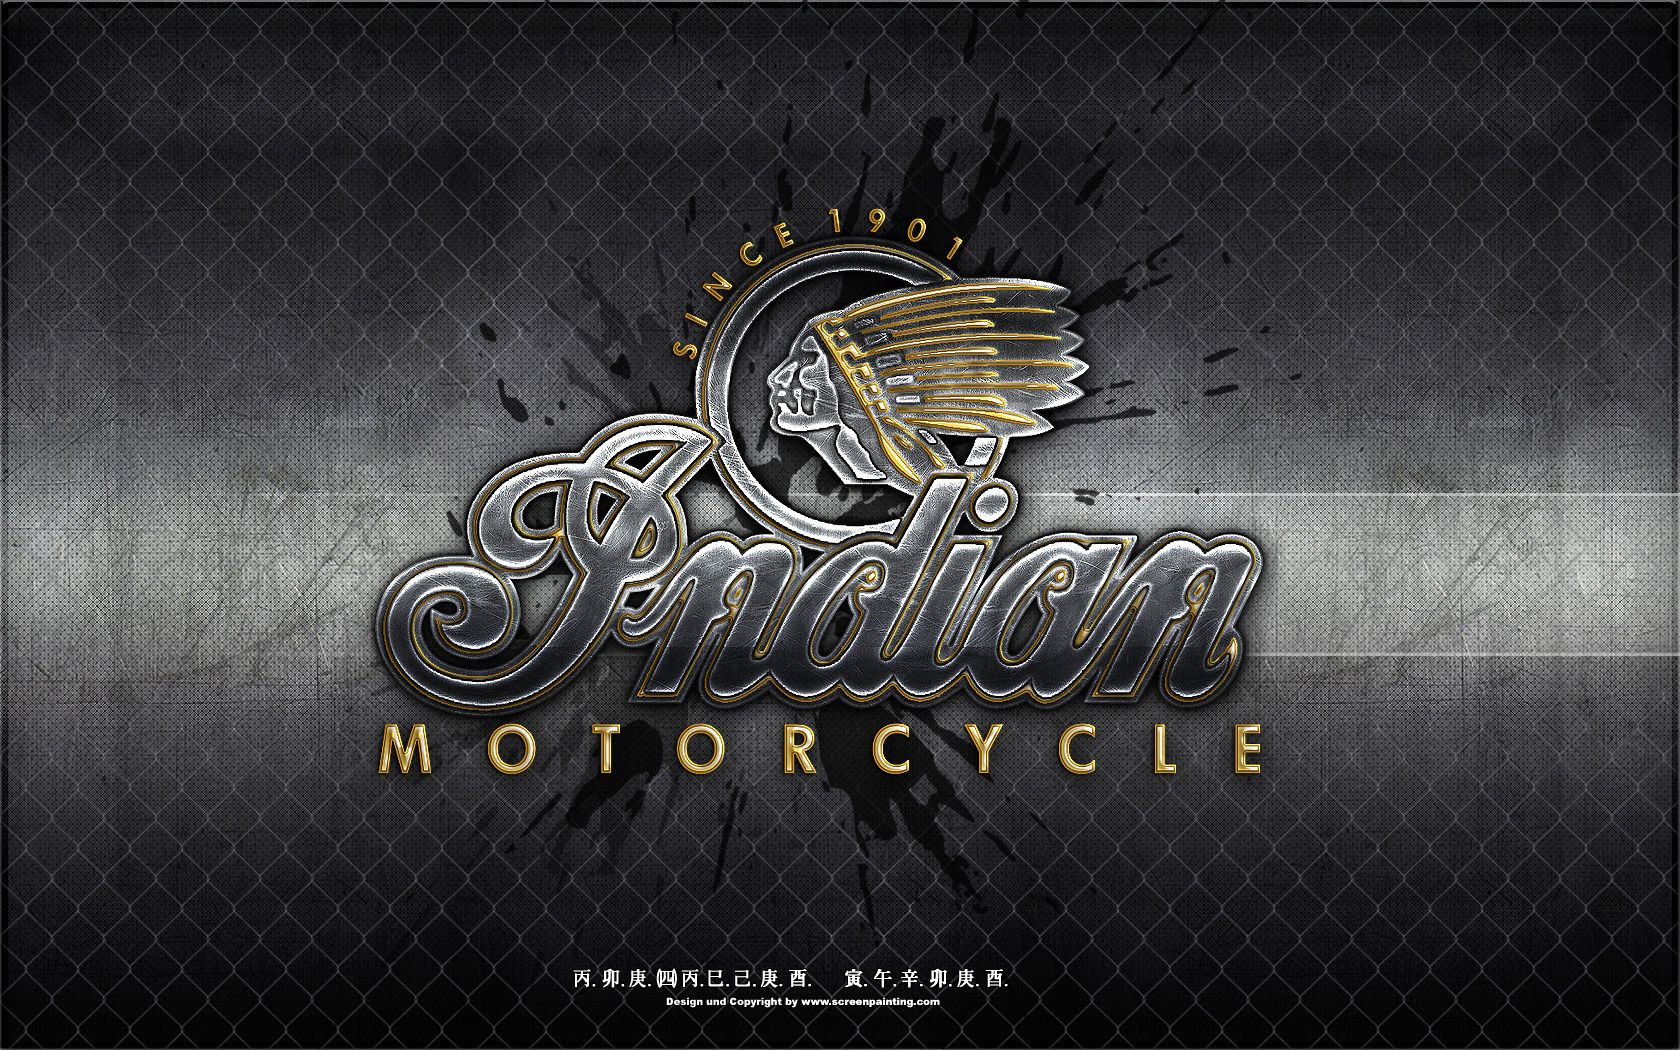 indian motorcycle springfield massachusetts   Google zoeken 1680x1050